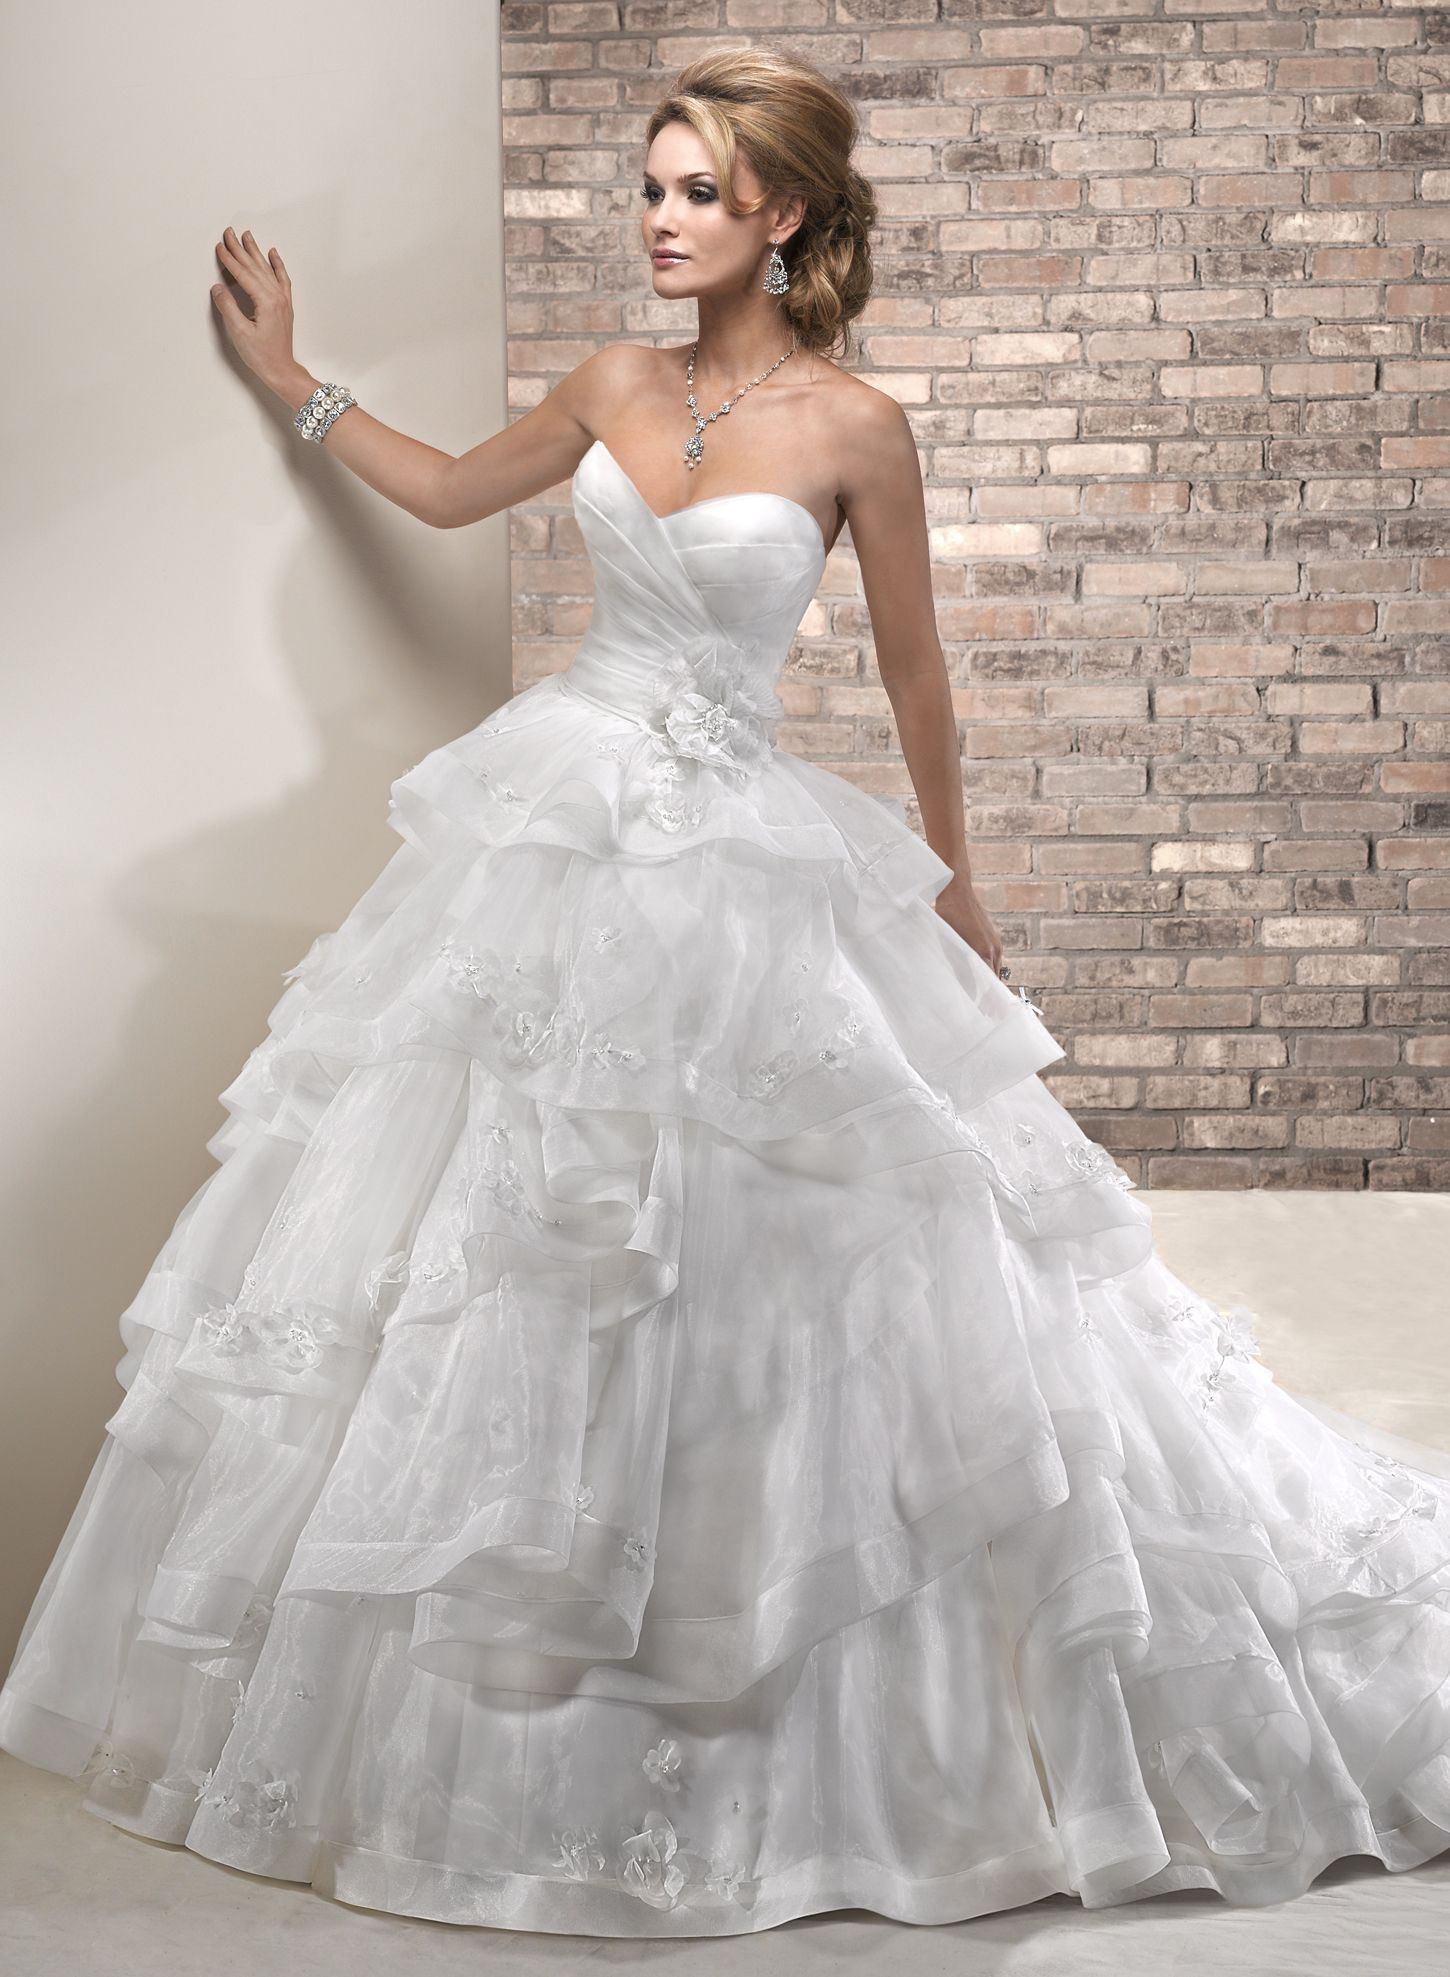 White and gold wedding sweetheart corset ballgown dress for Princess corset wedding dresses